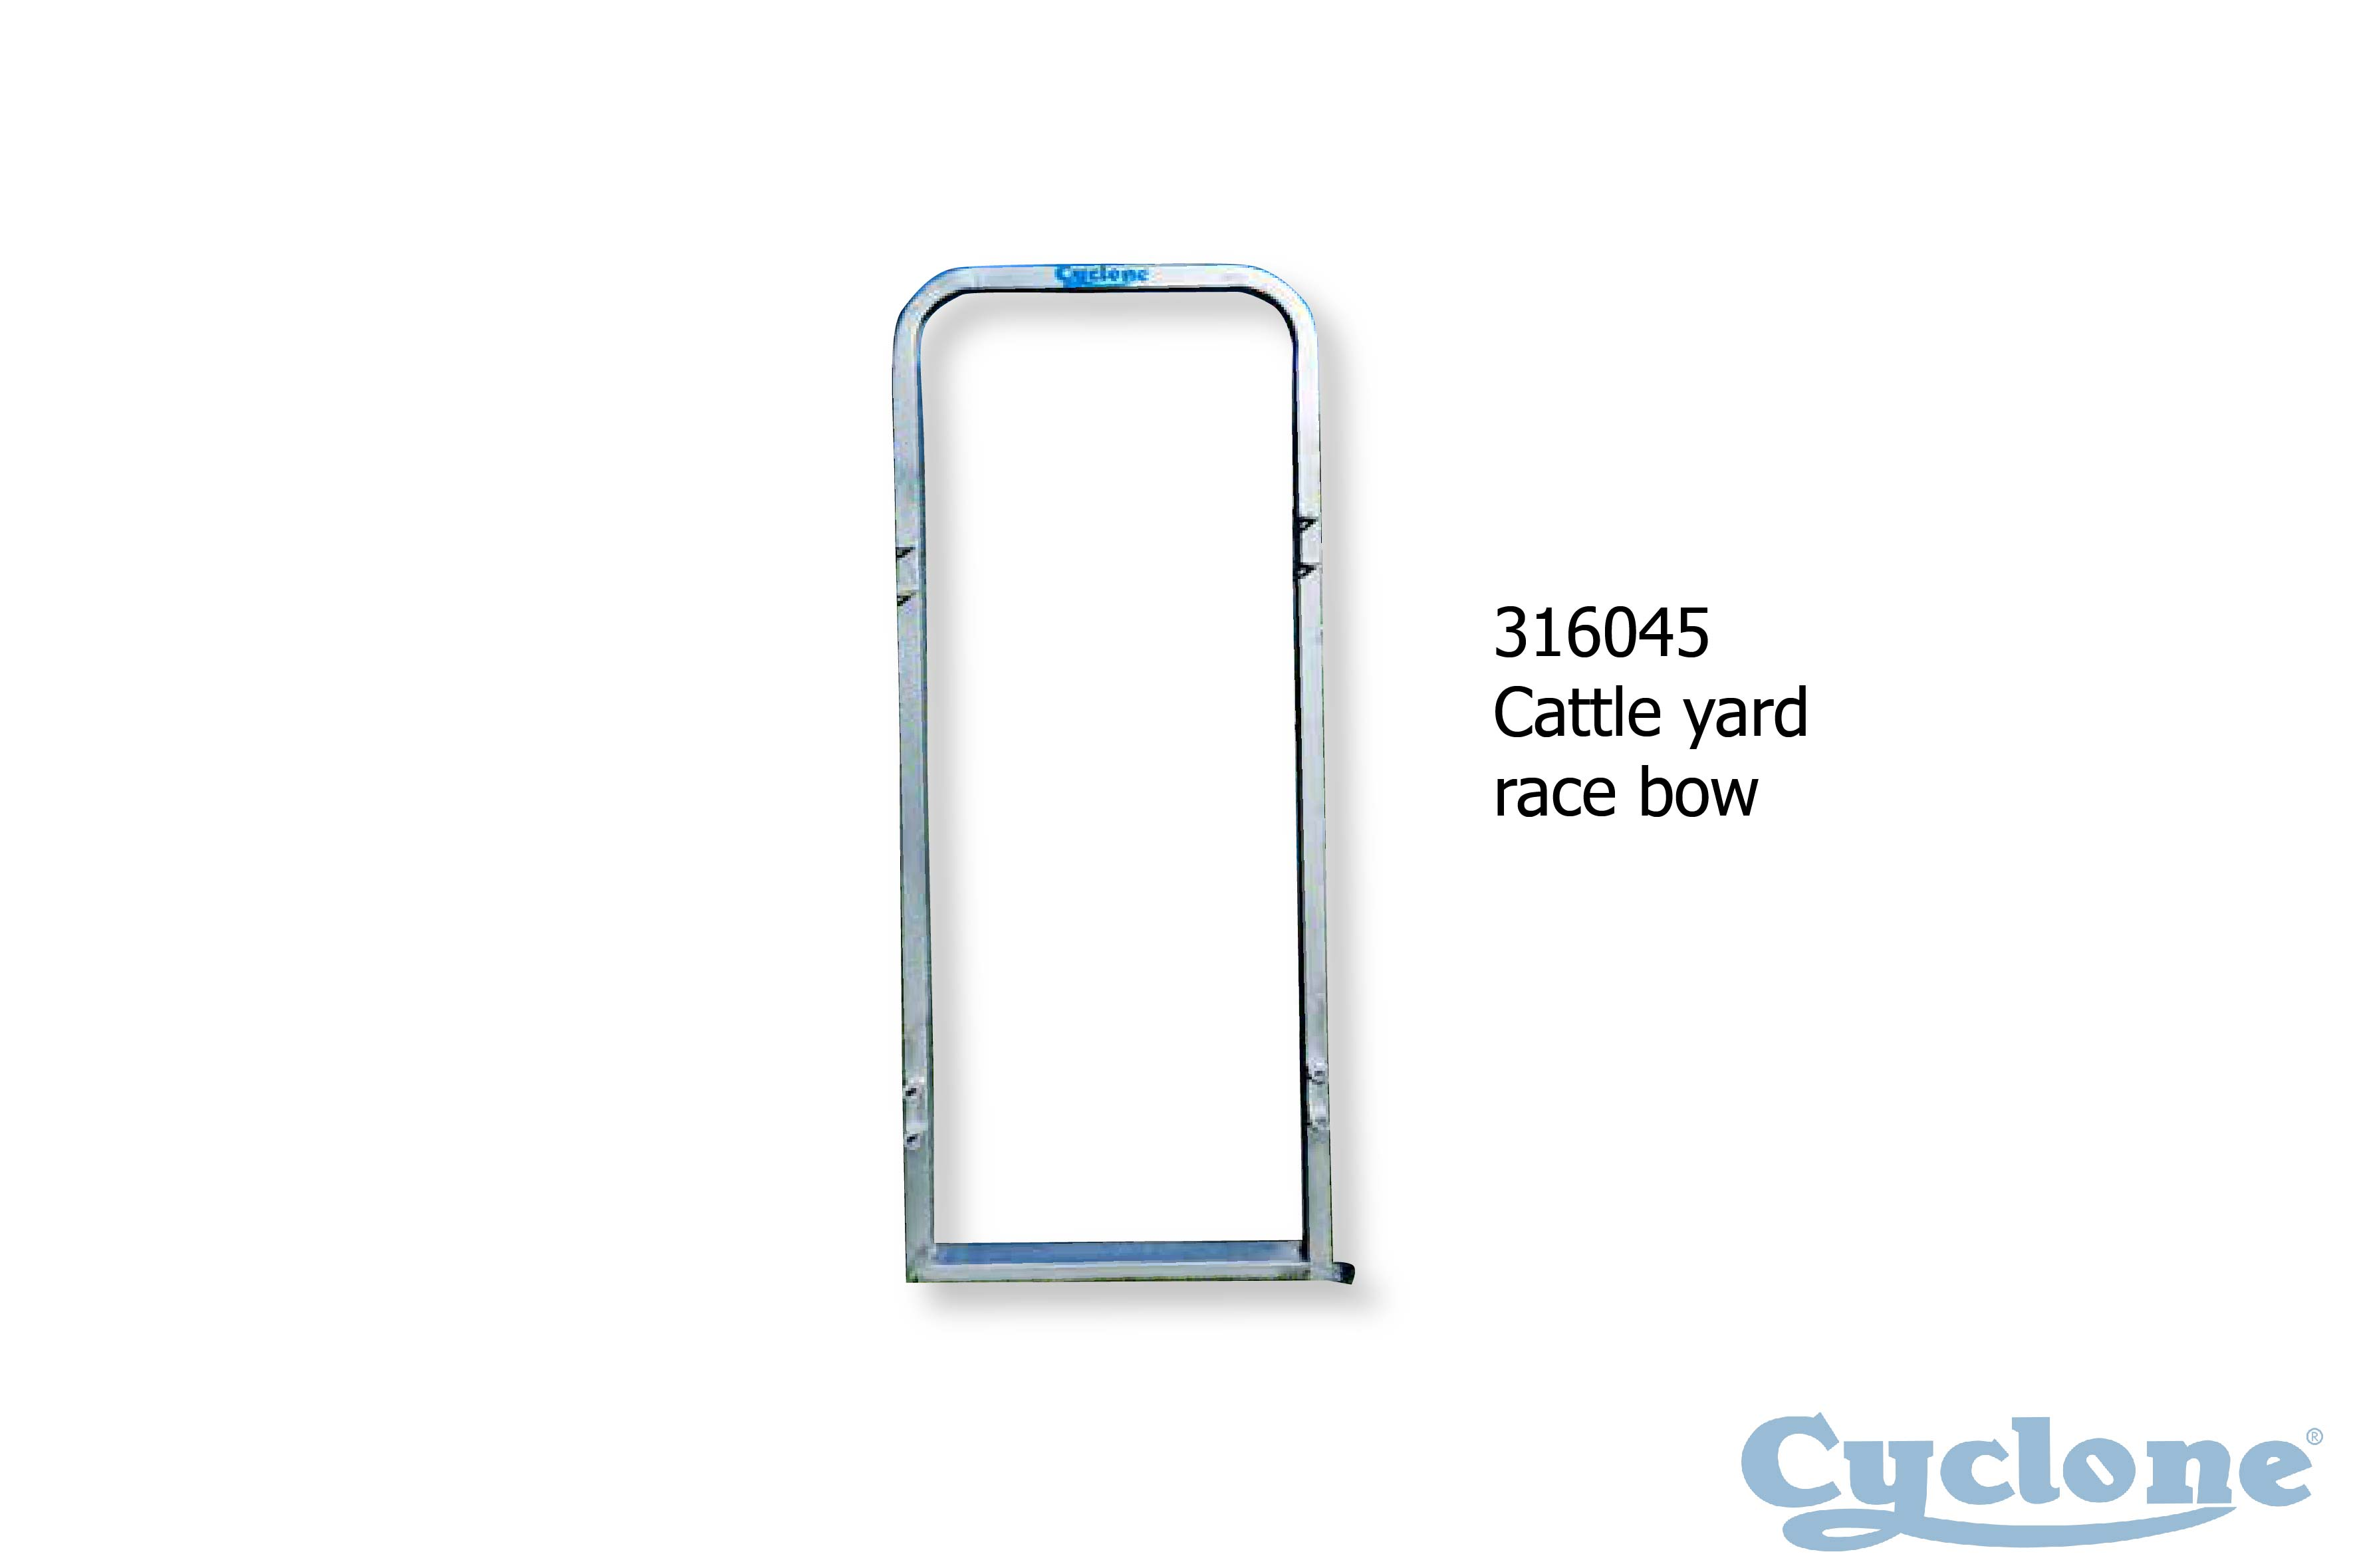 Cyclone Cattle Yard | cattle yard race bow